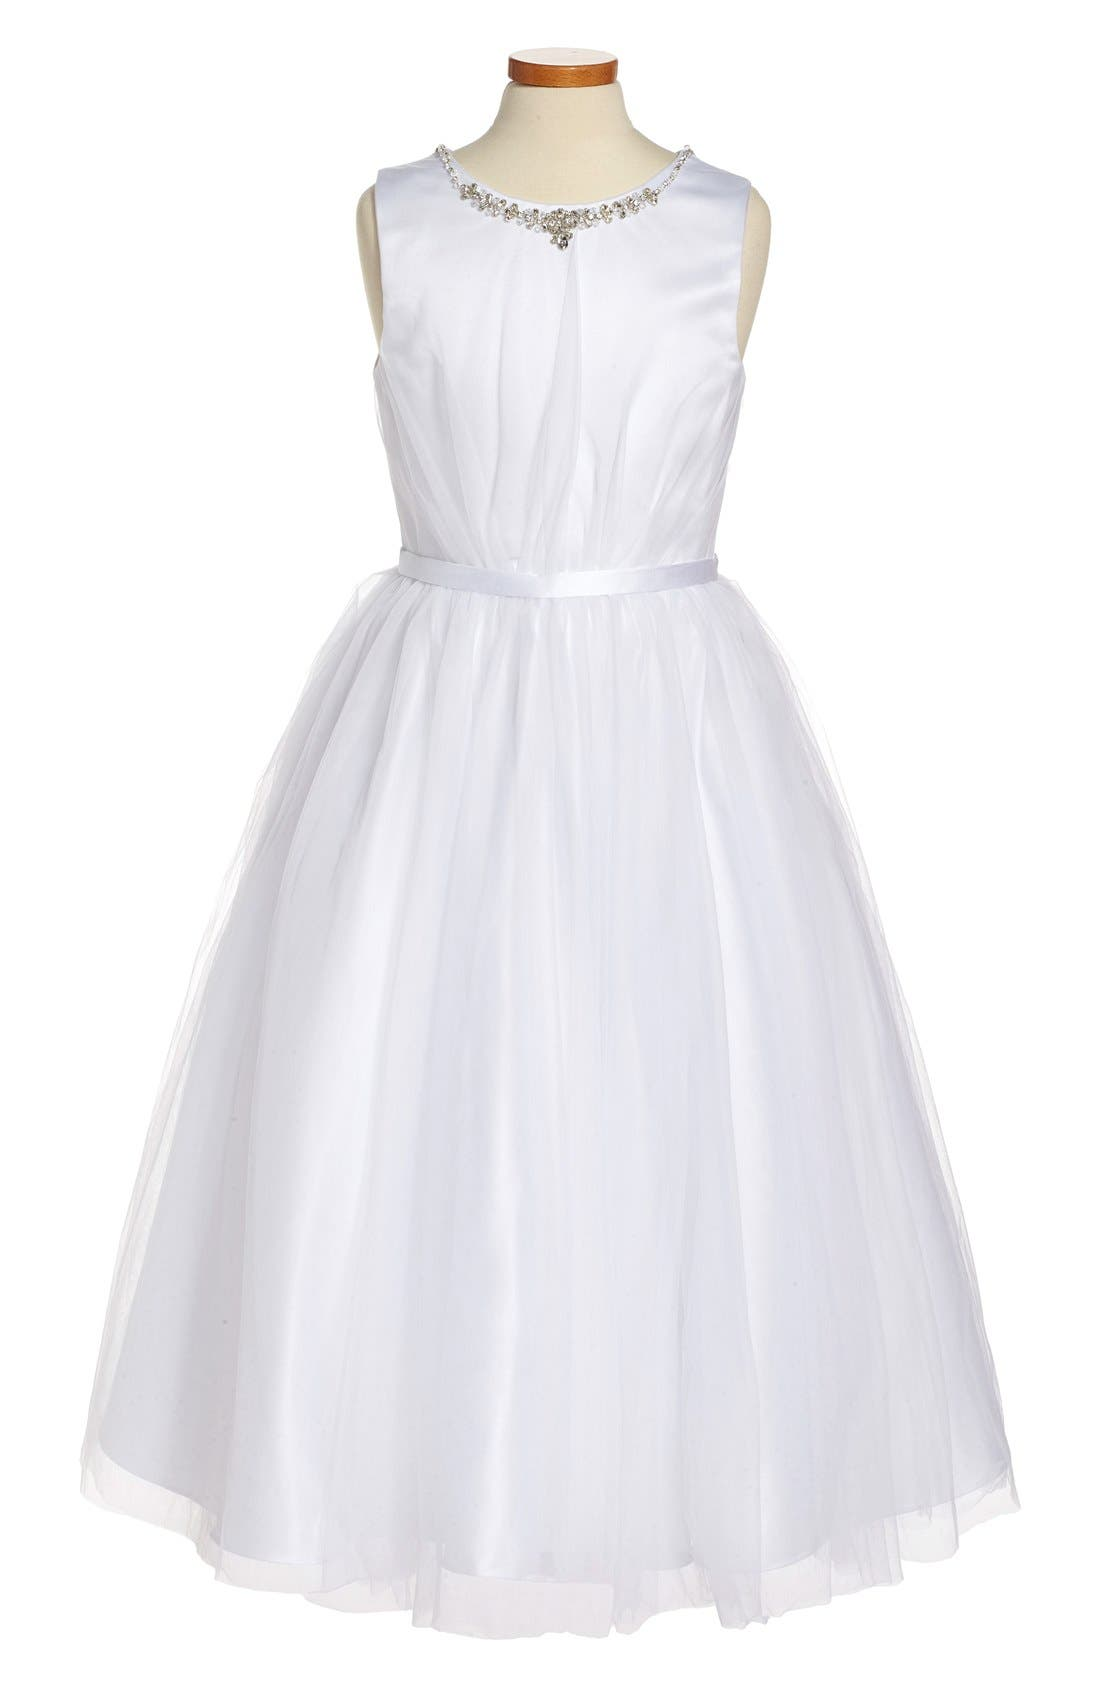 Beaded Satin & Tulle First Communion Dress,                             Main thumbnail 1, color,                             White